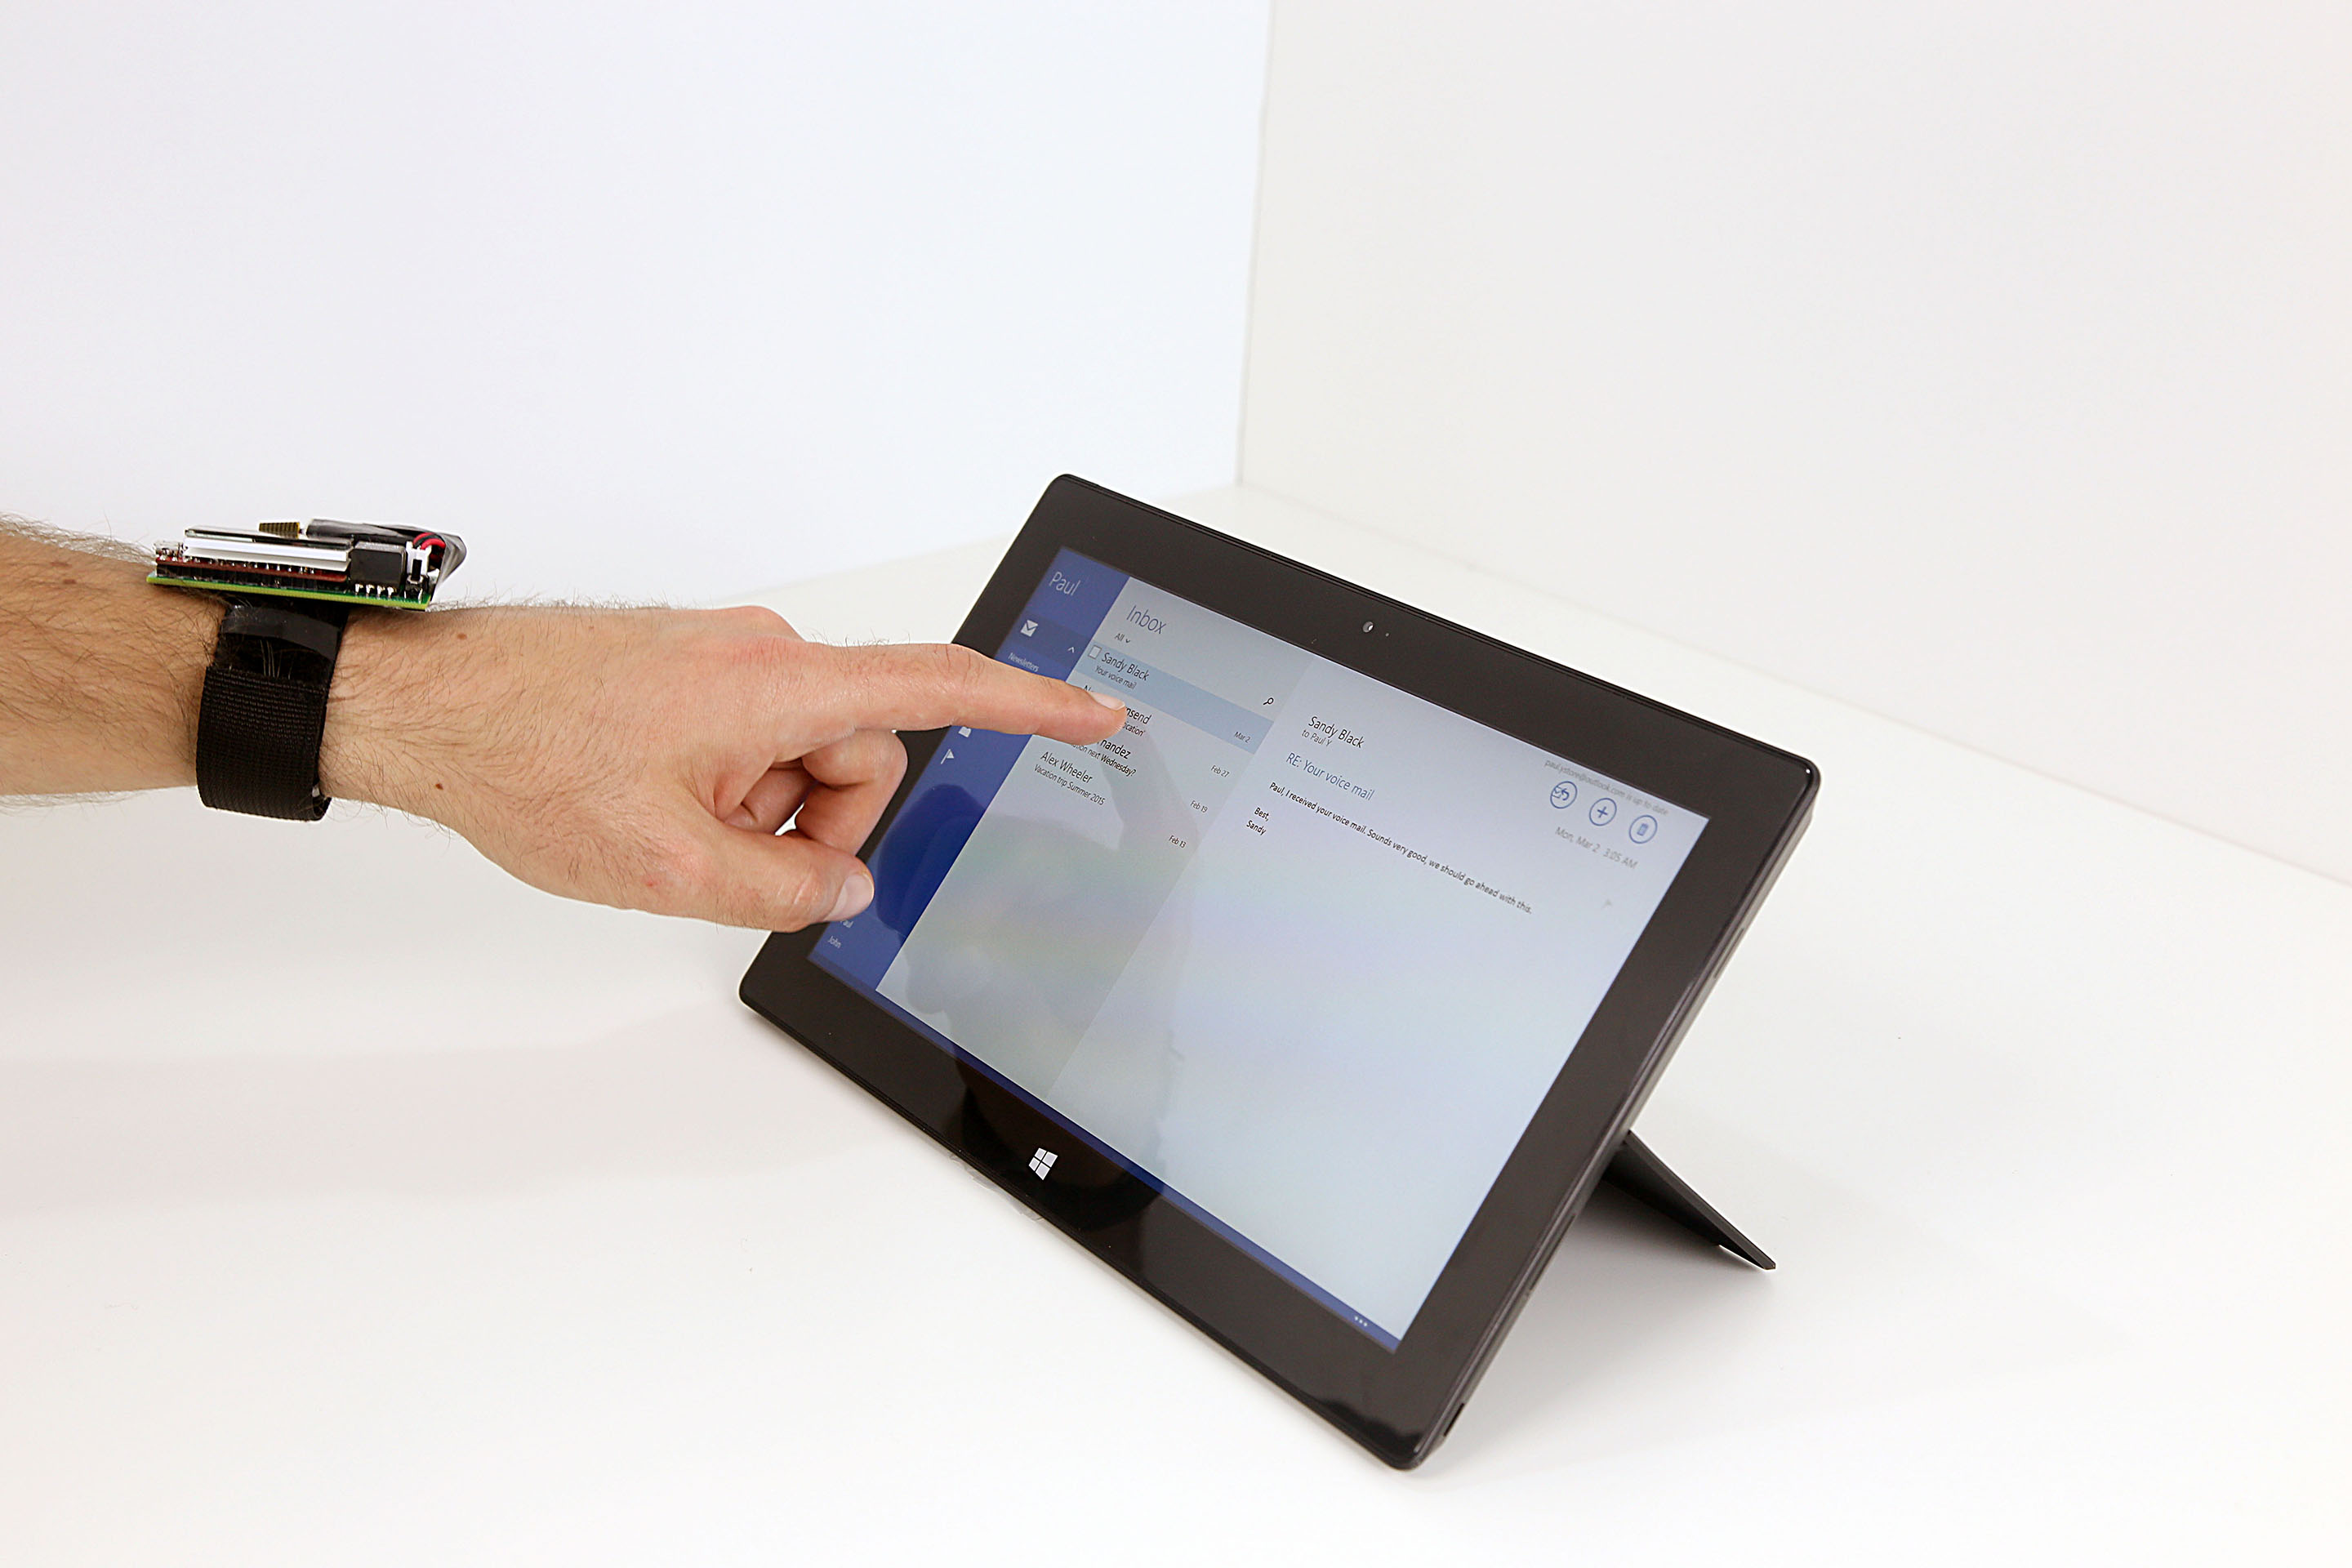 Biometric Touch Sensing: Seamlessly Augmenting Each Touch With